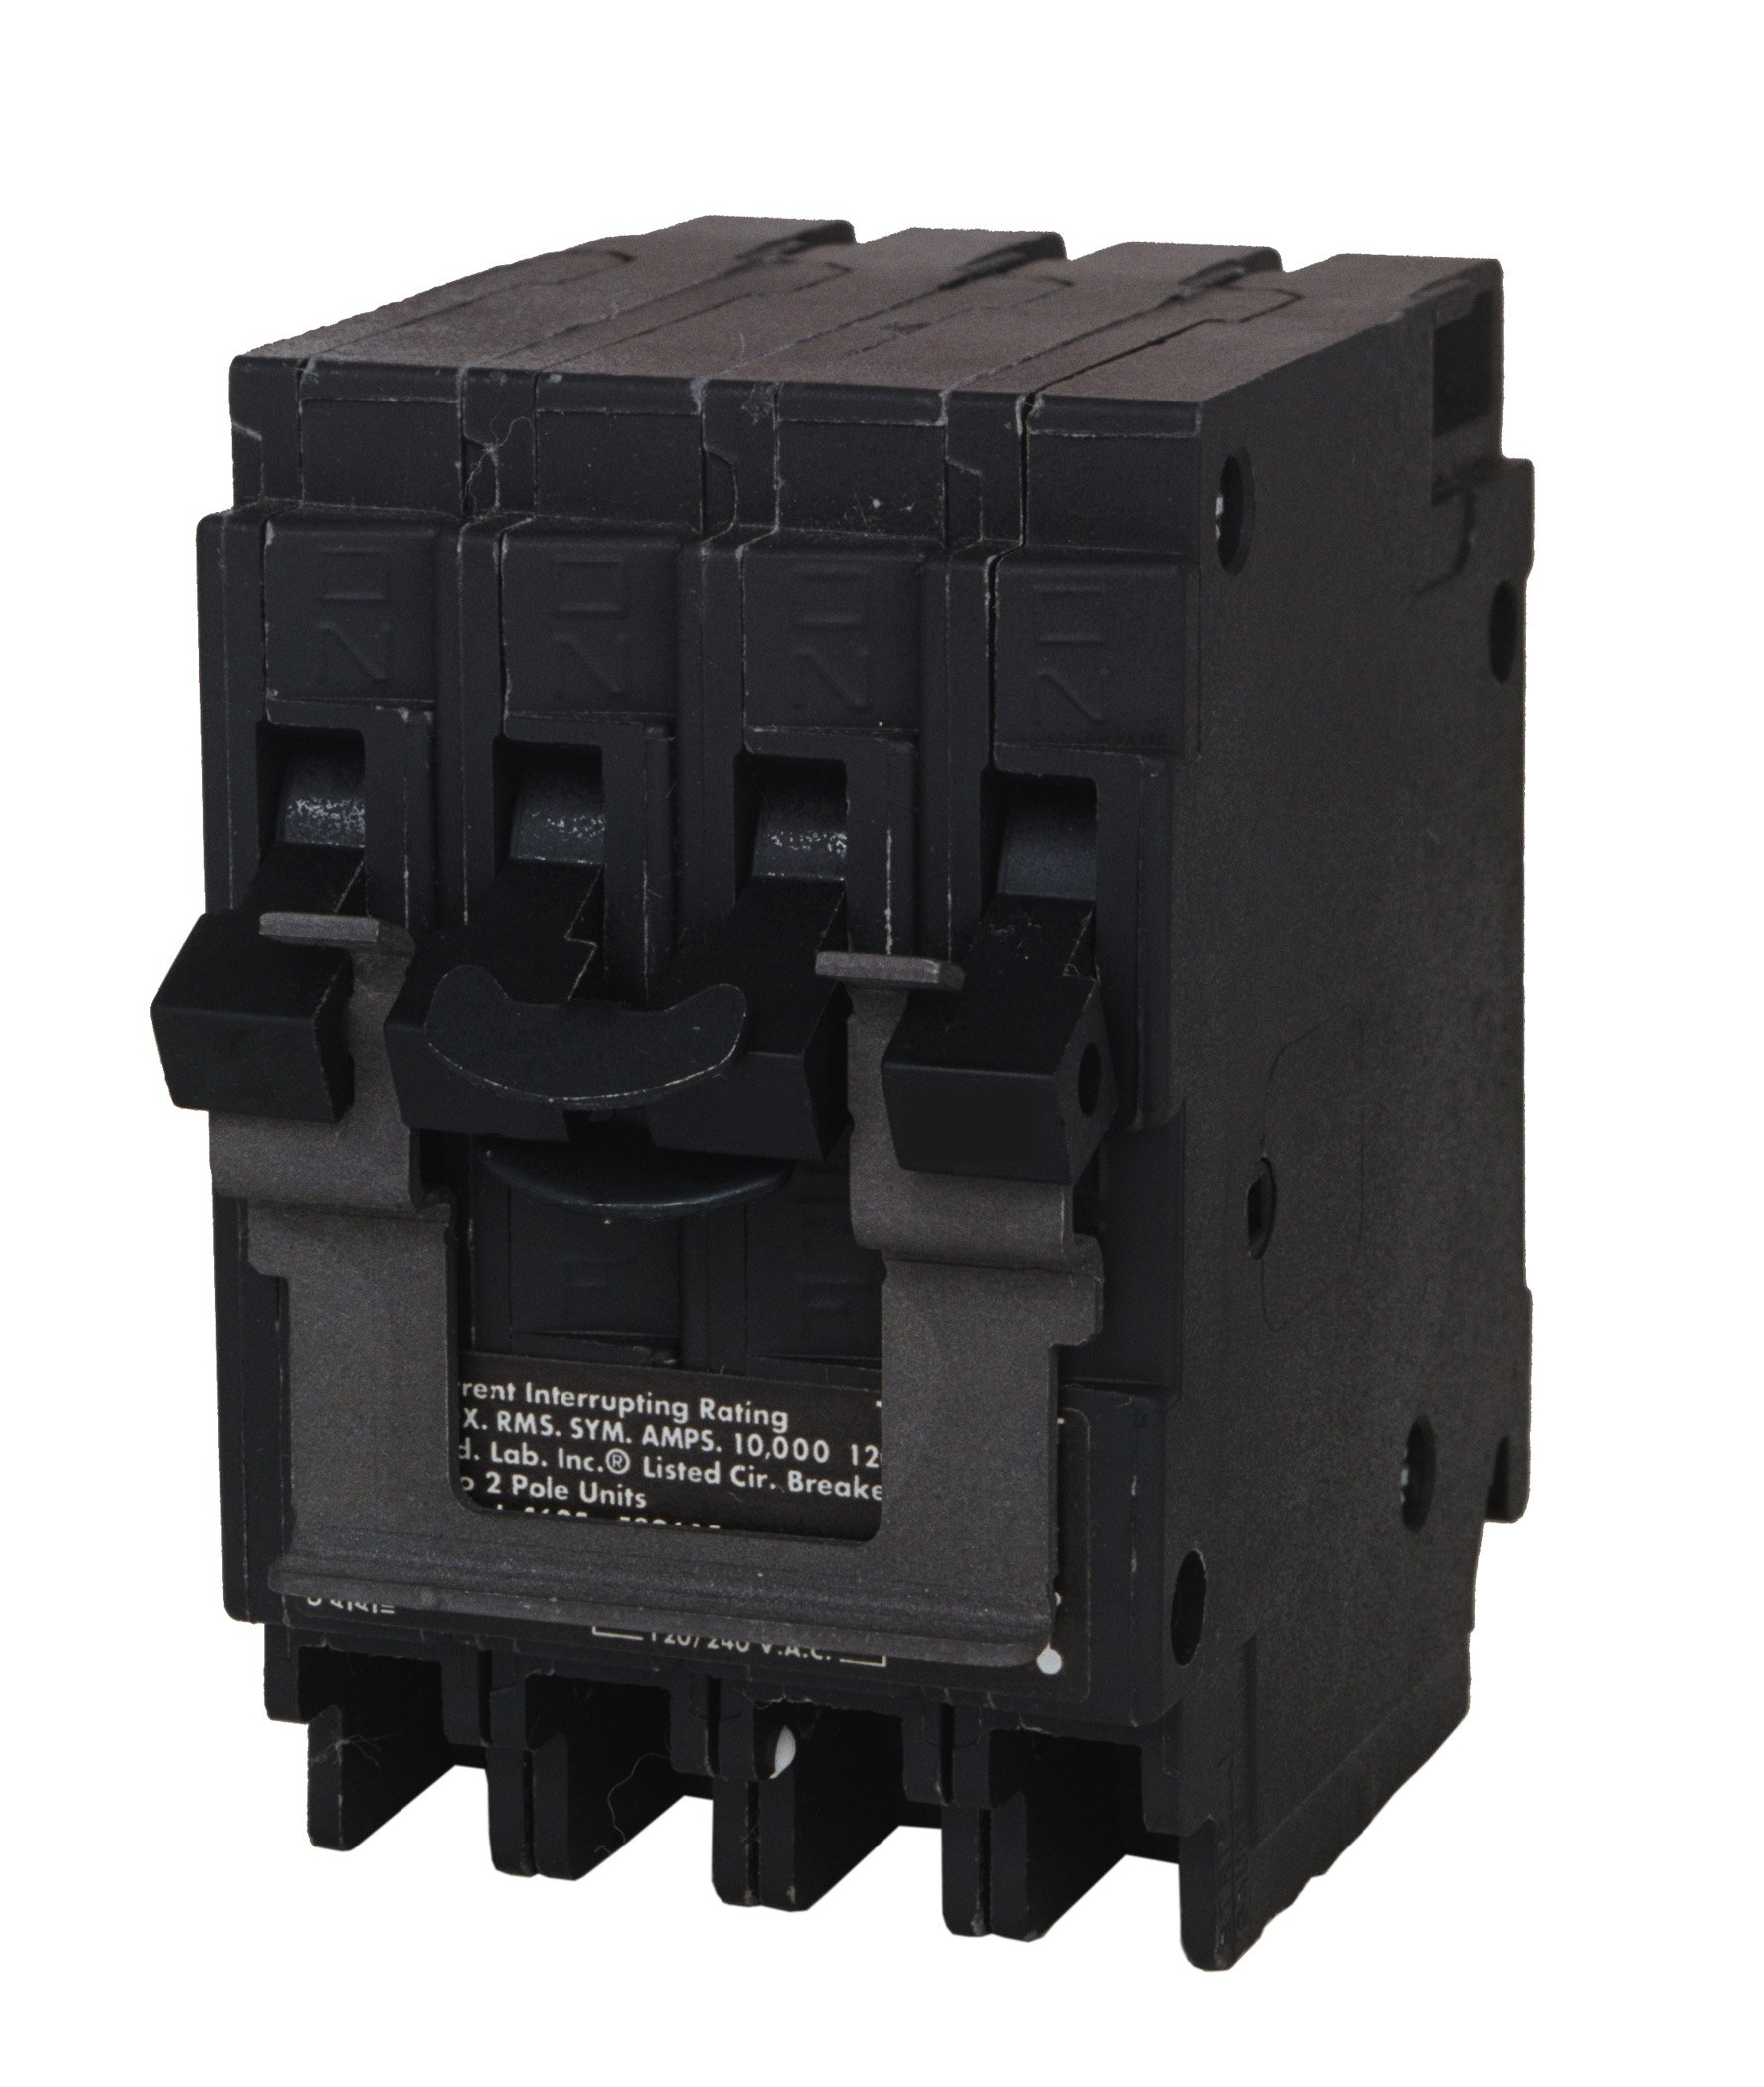 Murray MP220240CT2 One 20-Amp Double Pole One 40-Amp Double Pole Circuit Breaker